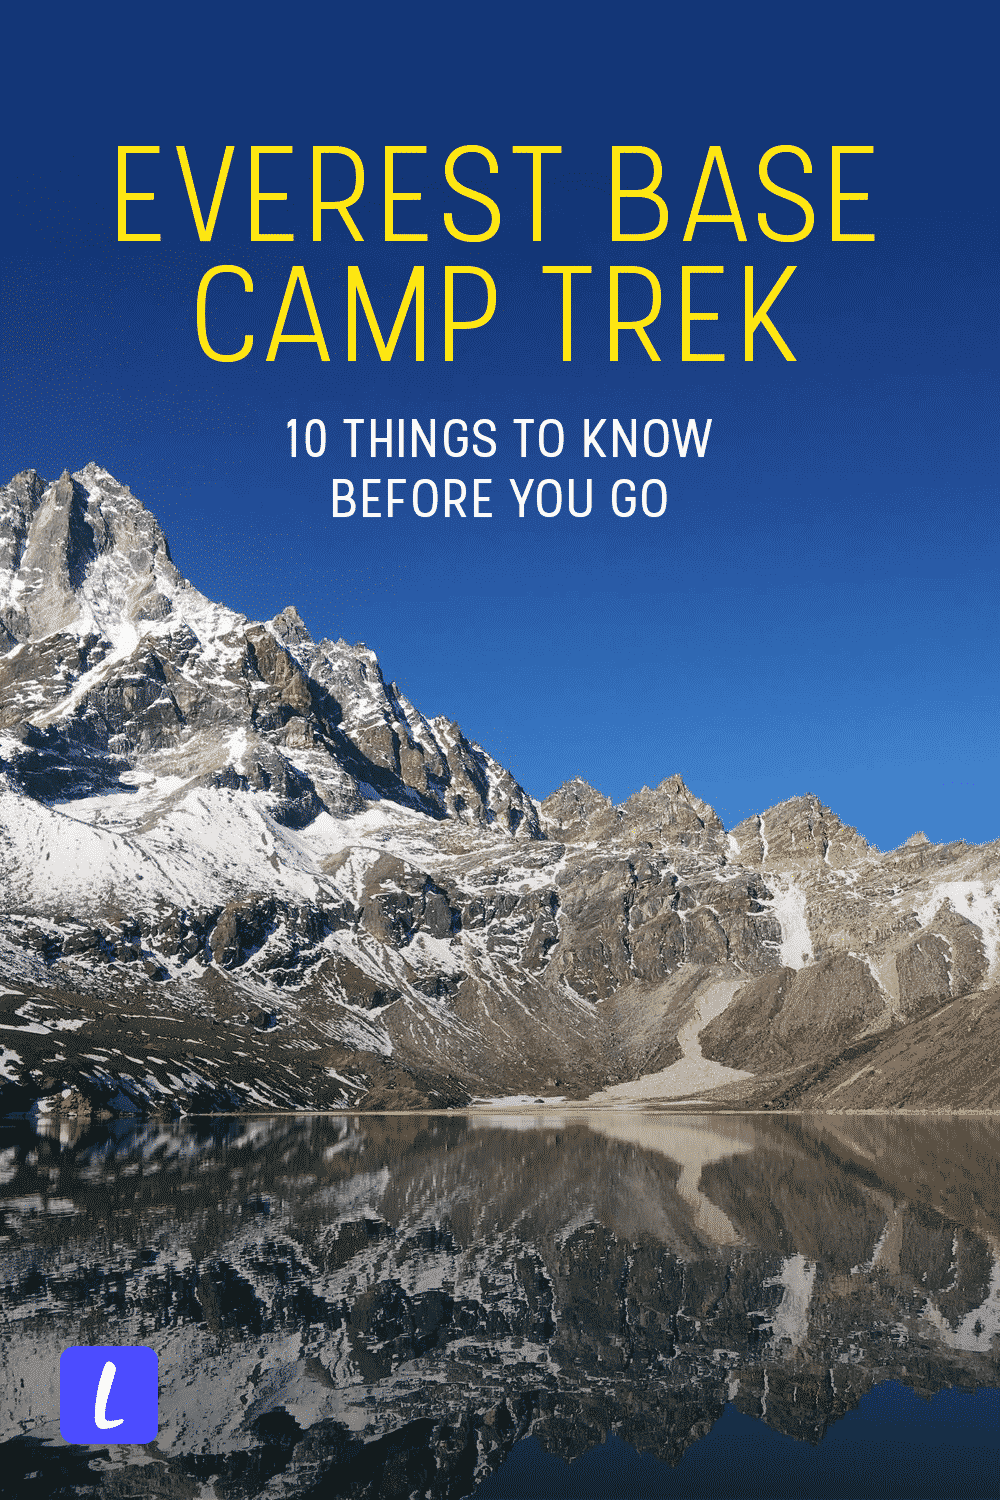 Planning on doing the Everest Base Camp trek? Here's what you need to know before hiking the EBC in Nepal, including what to pack, where to begin, how to stay safe, and more.